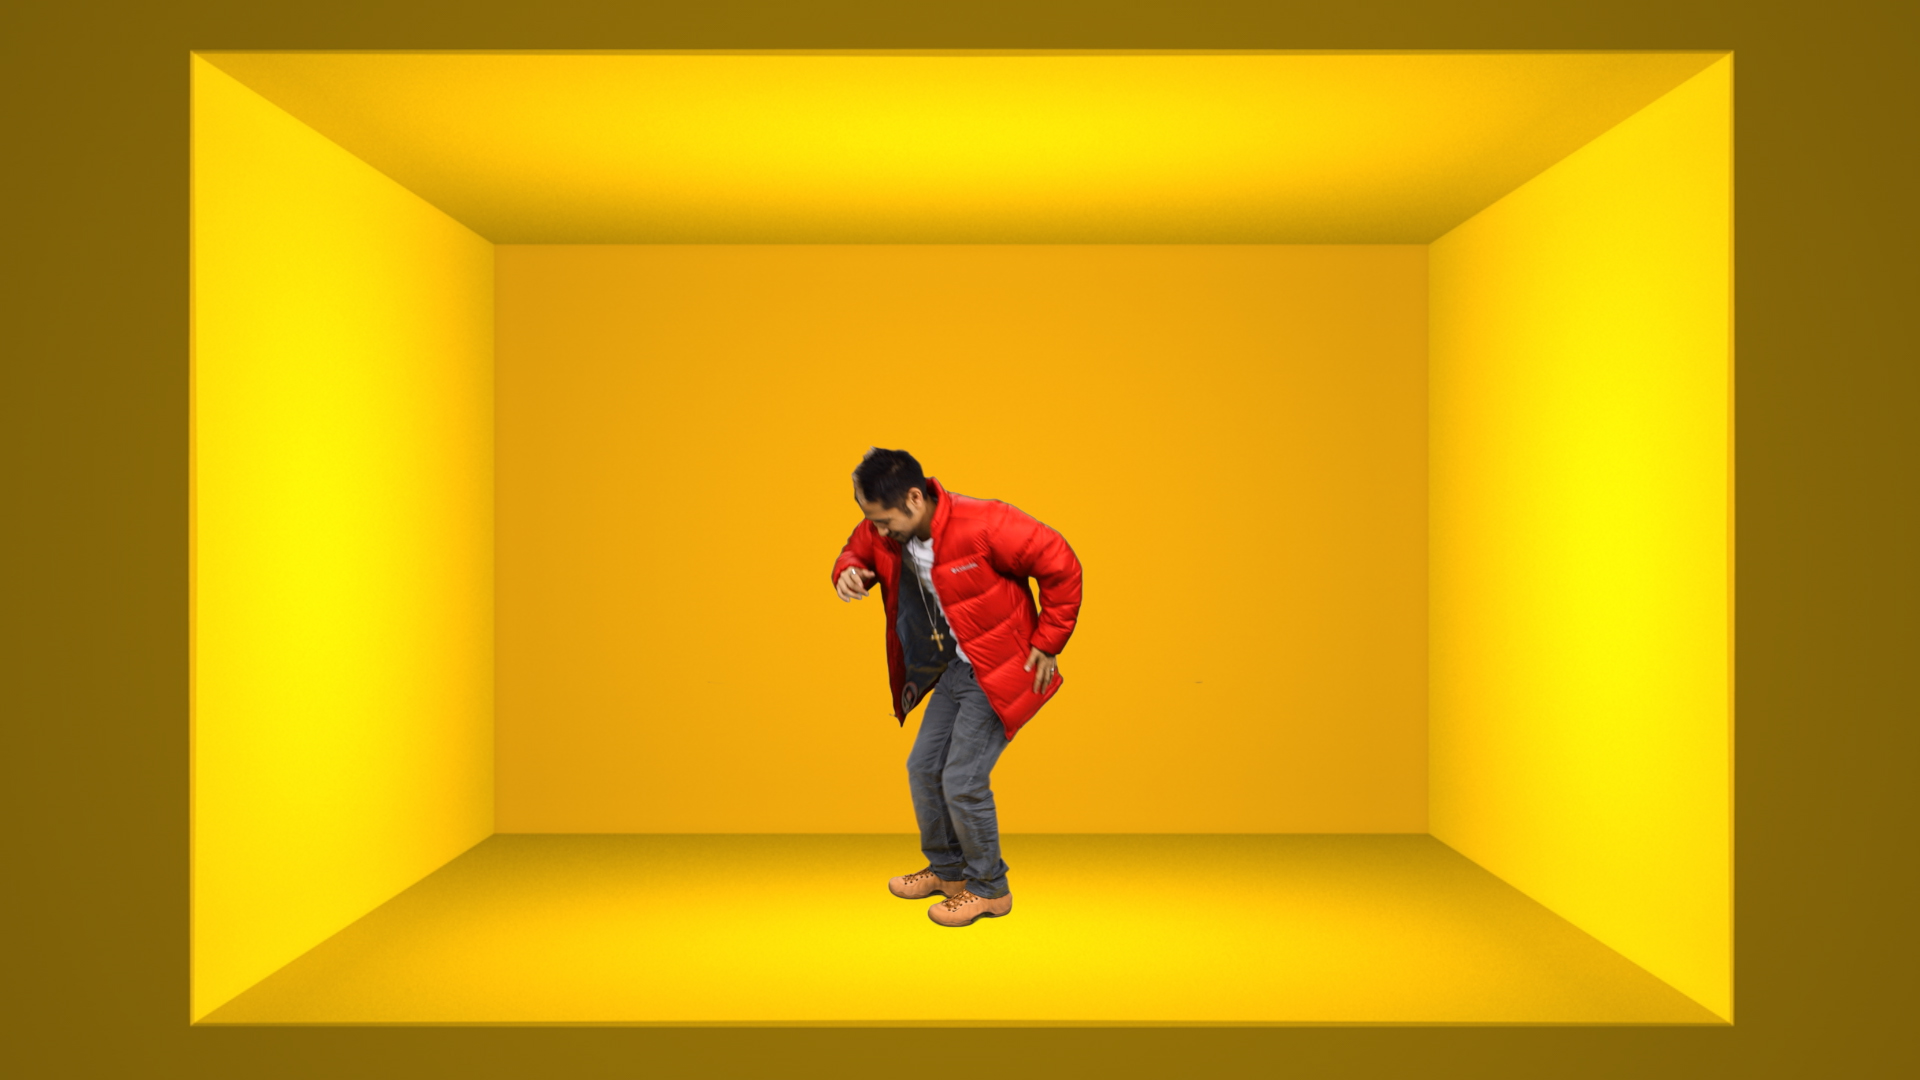 Video: Drake 'Hotline Bling' parody -- 'iPhone SE'